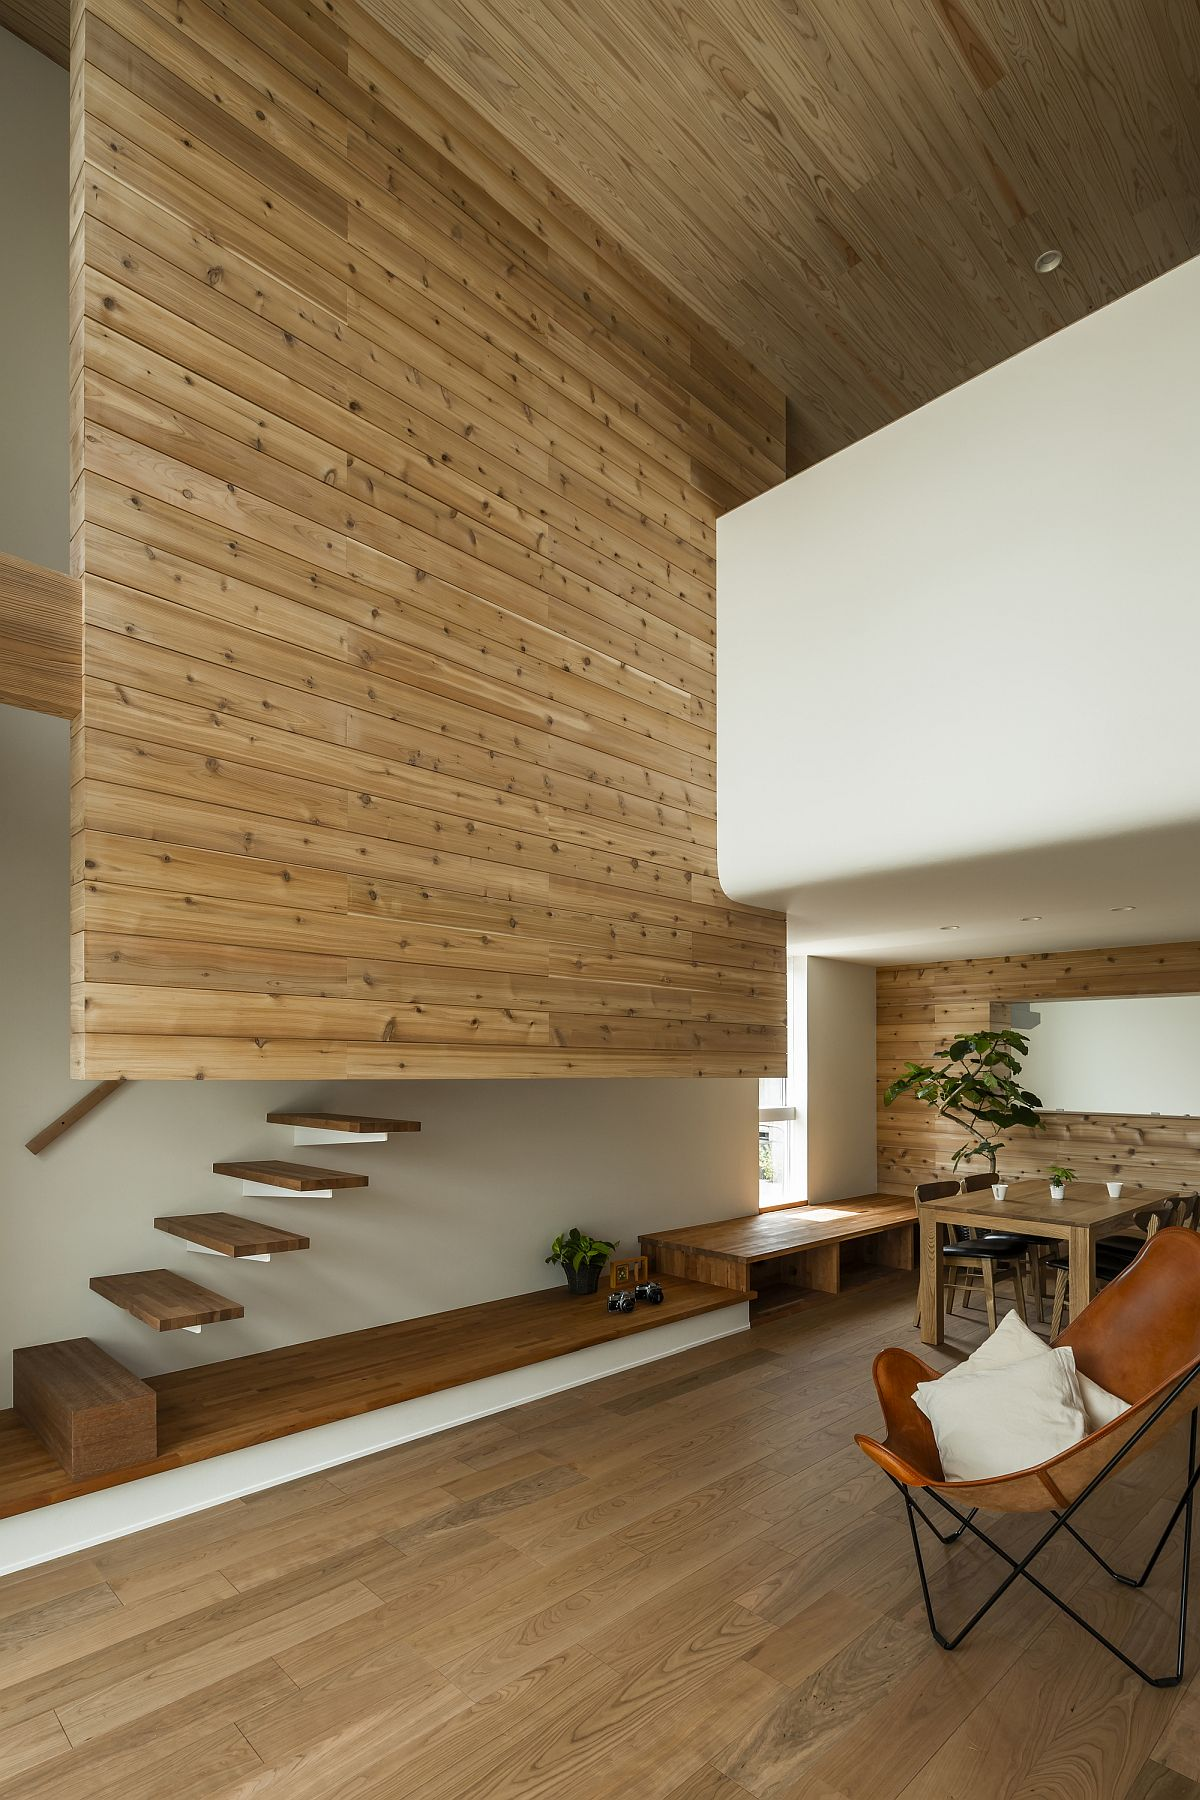 Innovative minimal stiarcase design inside the modern Japanese home